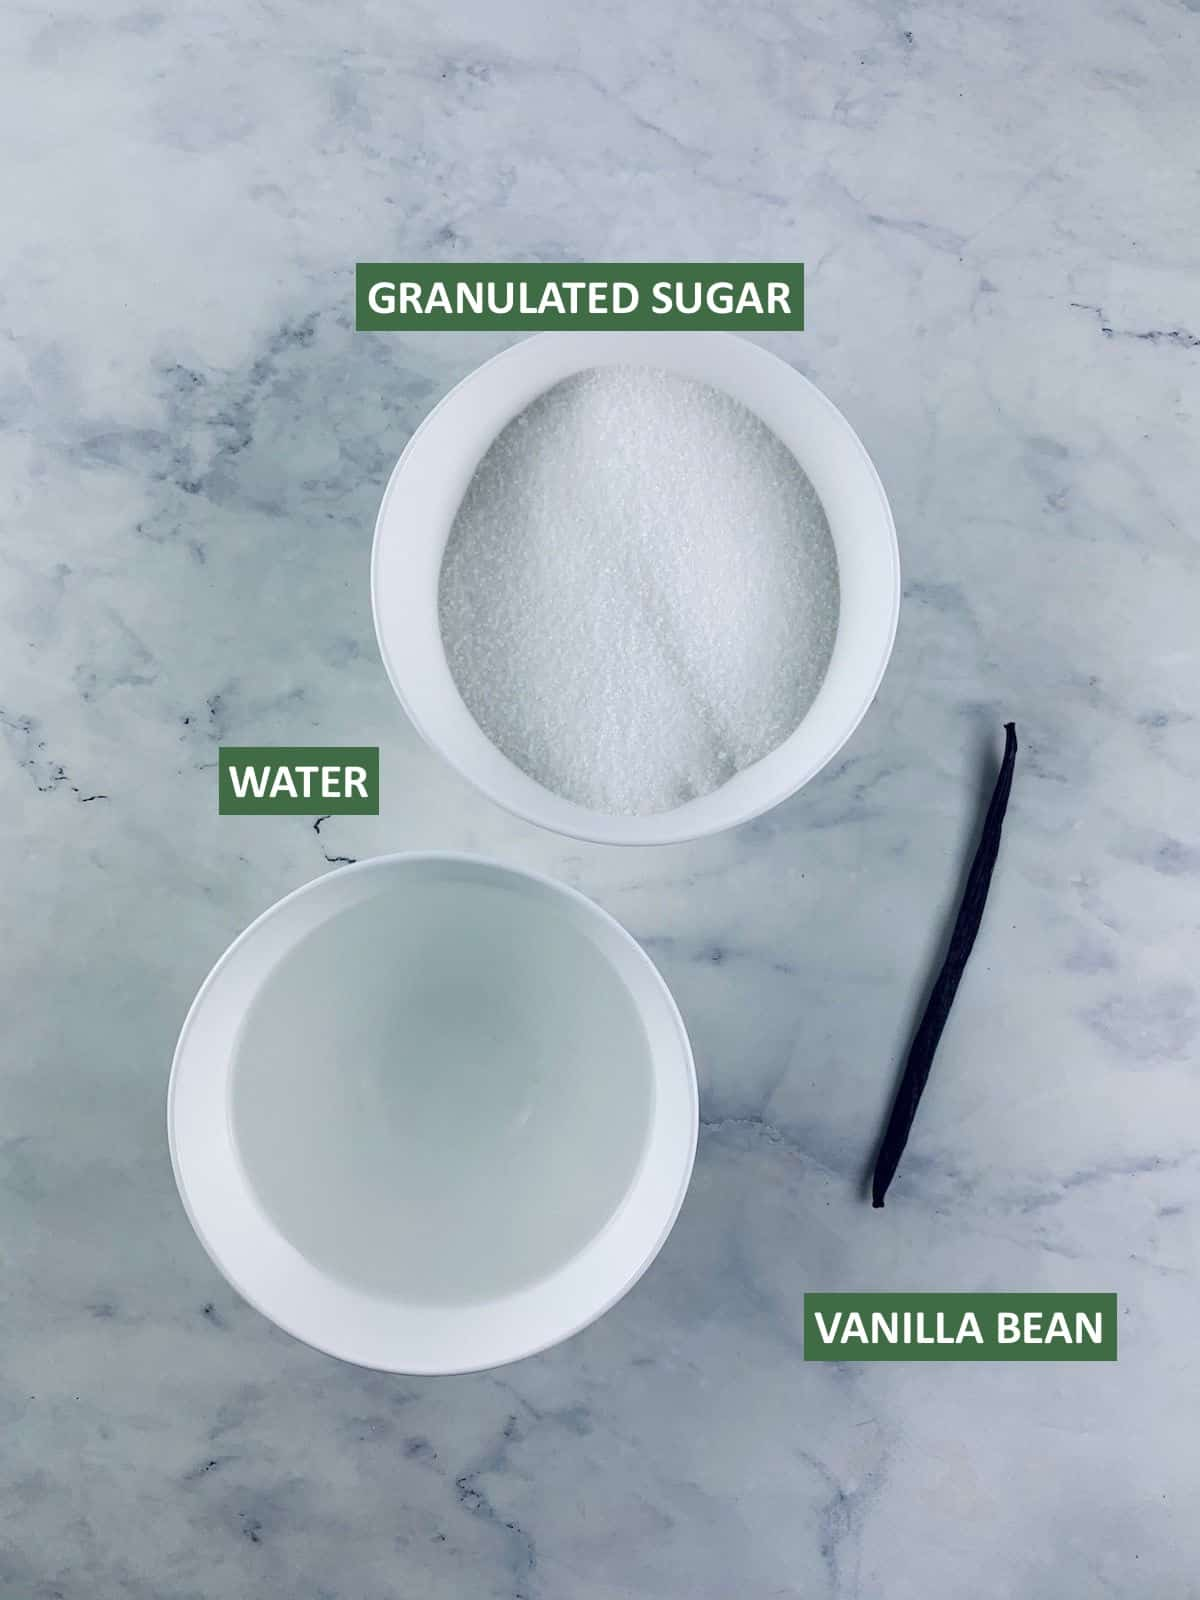 LABELLED INGREDIENTS NEEDED TO MAKE VANILLA BEAN SYRUP